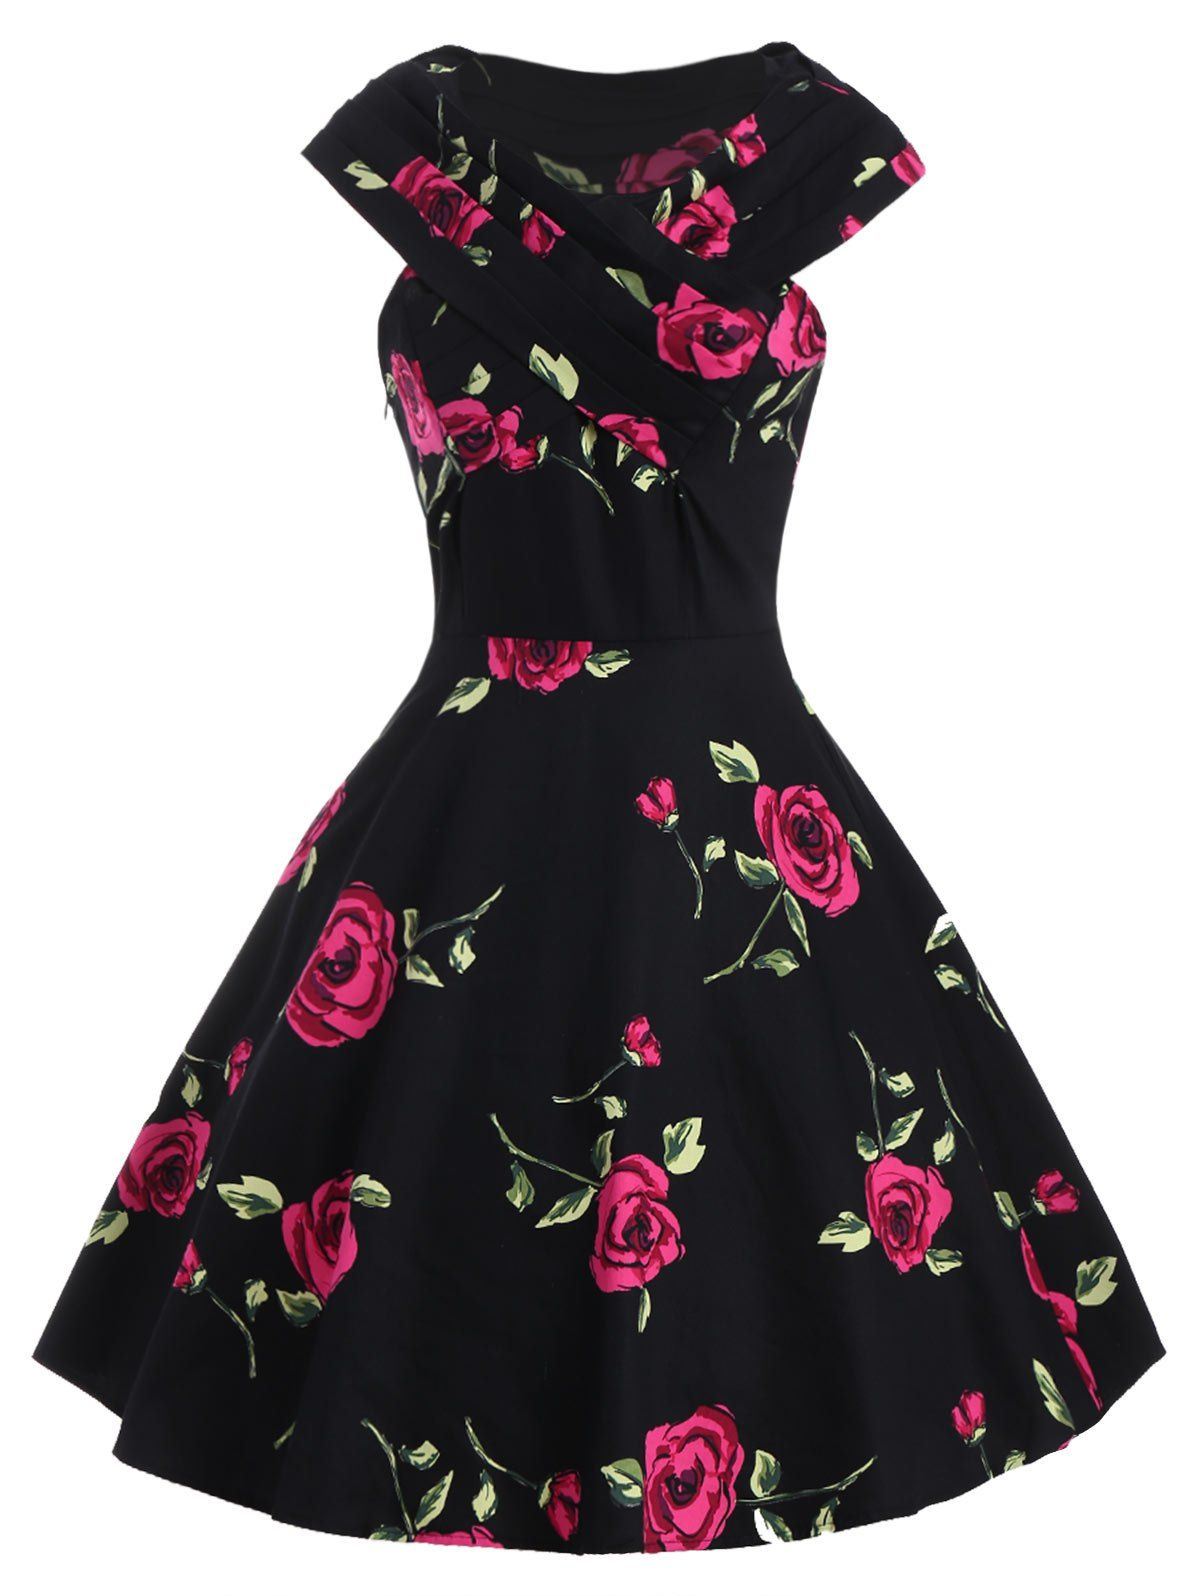 Retro style womenus vneck rose print short sleeve ball dress